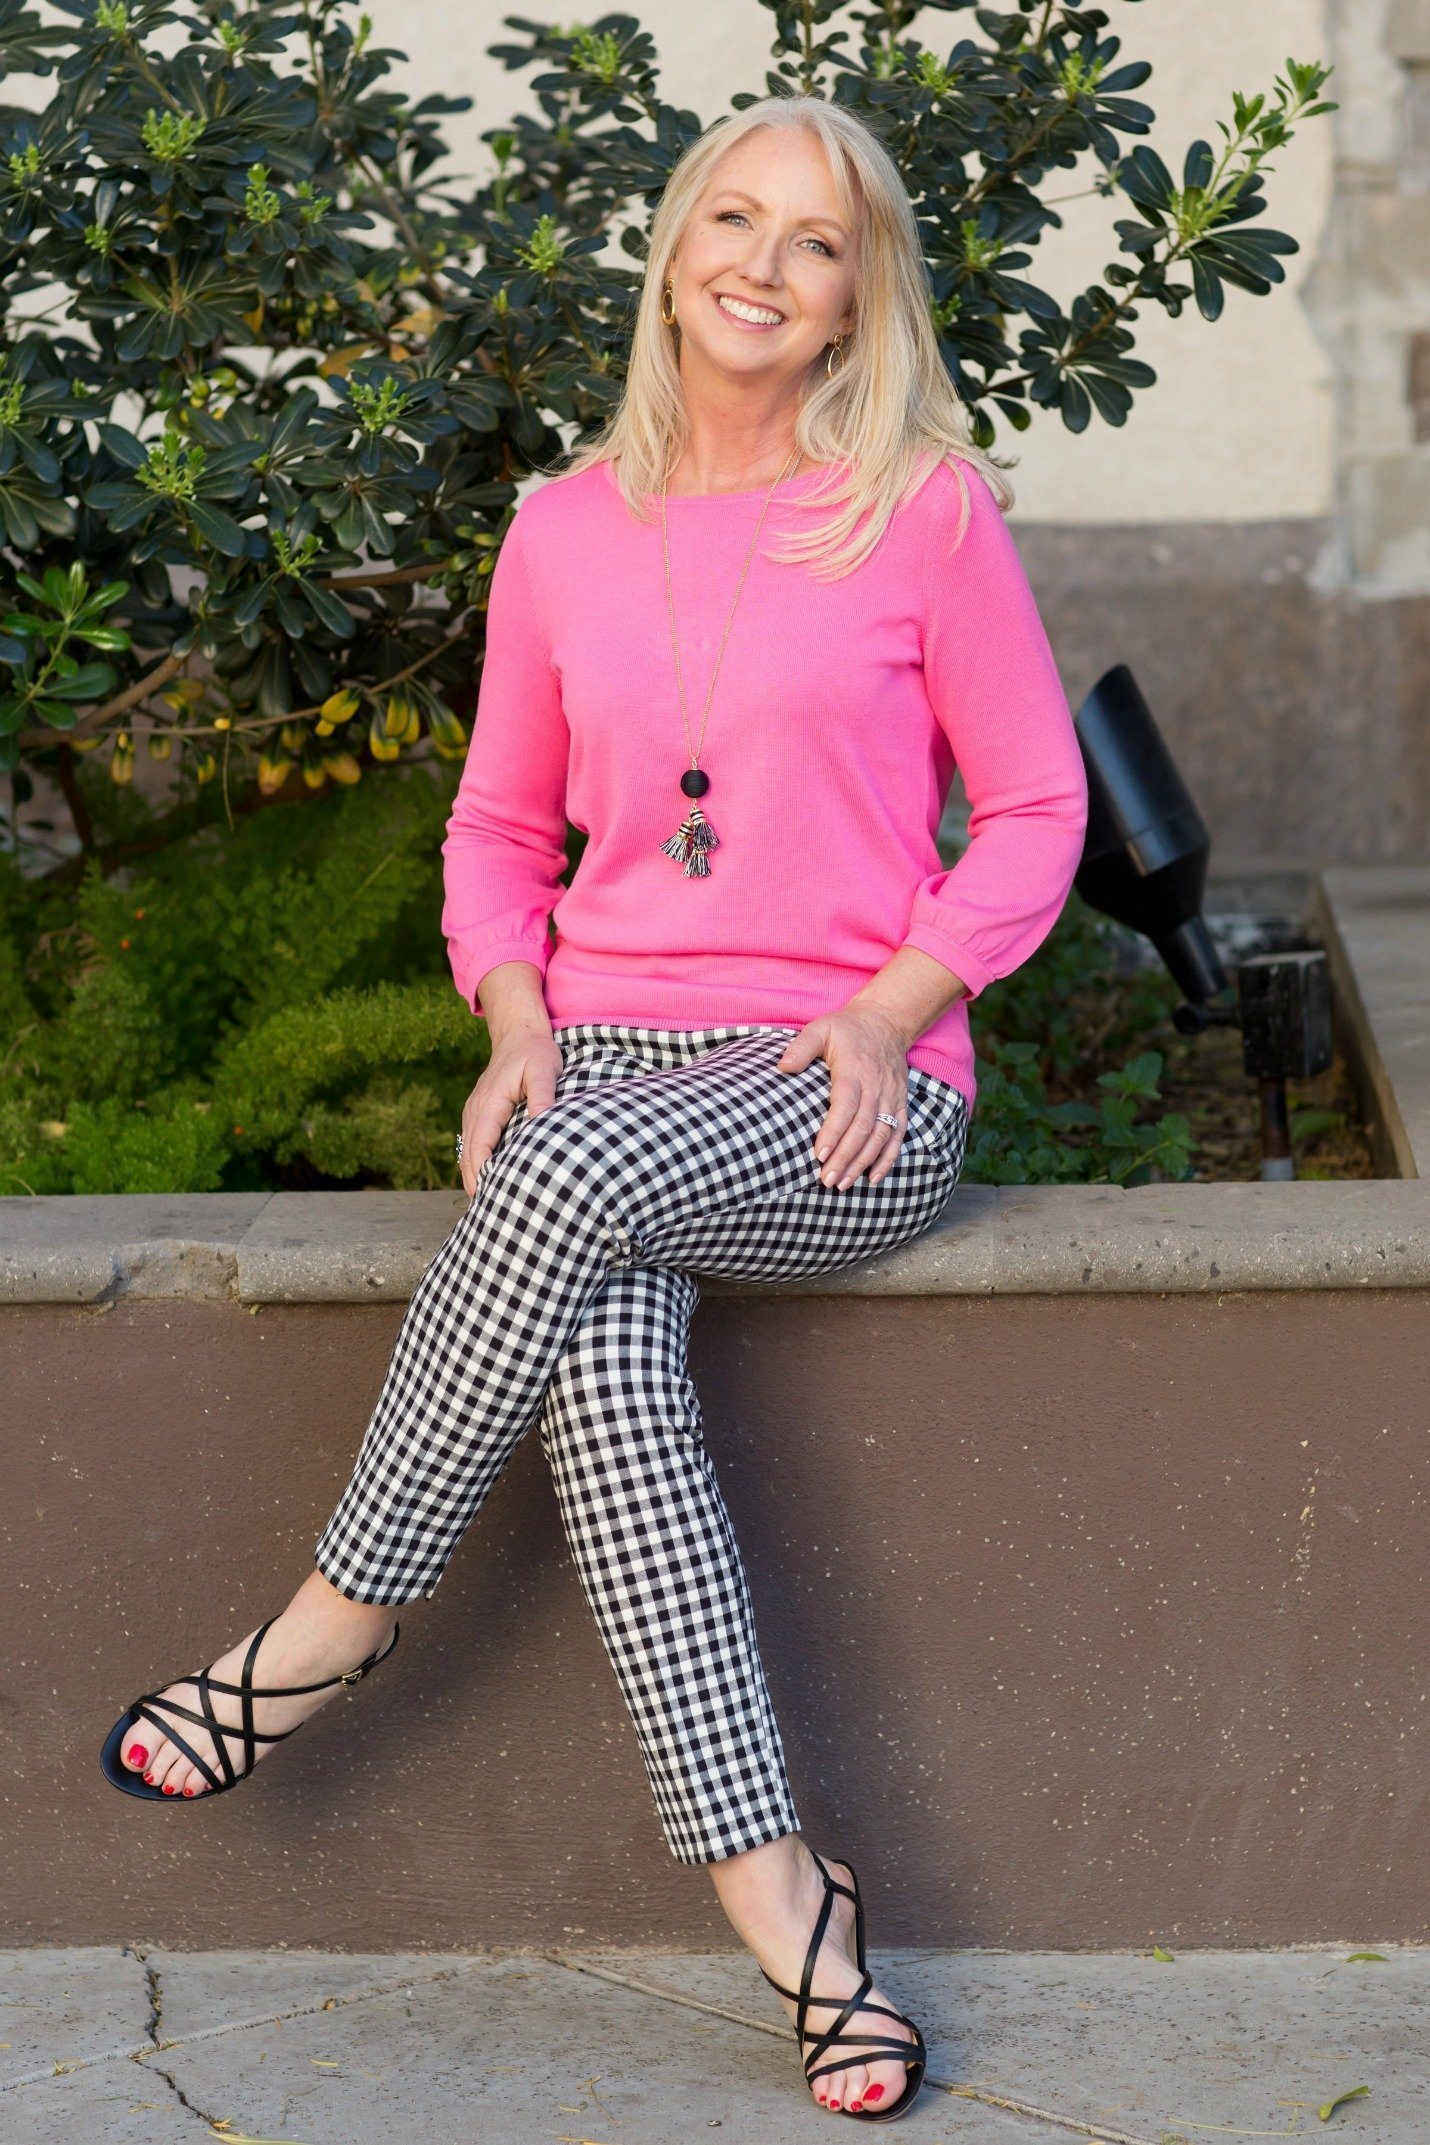 Gingham Pants with Pink Sweater Fun